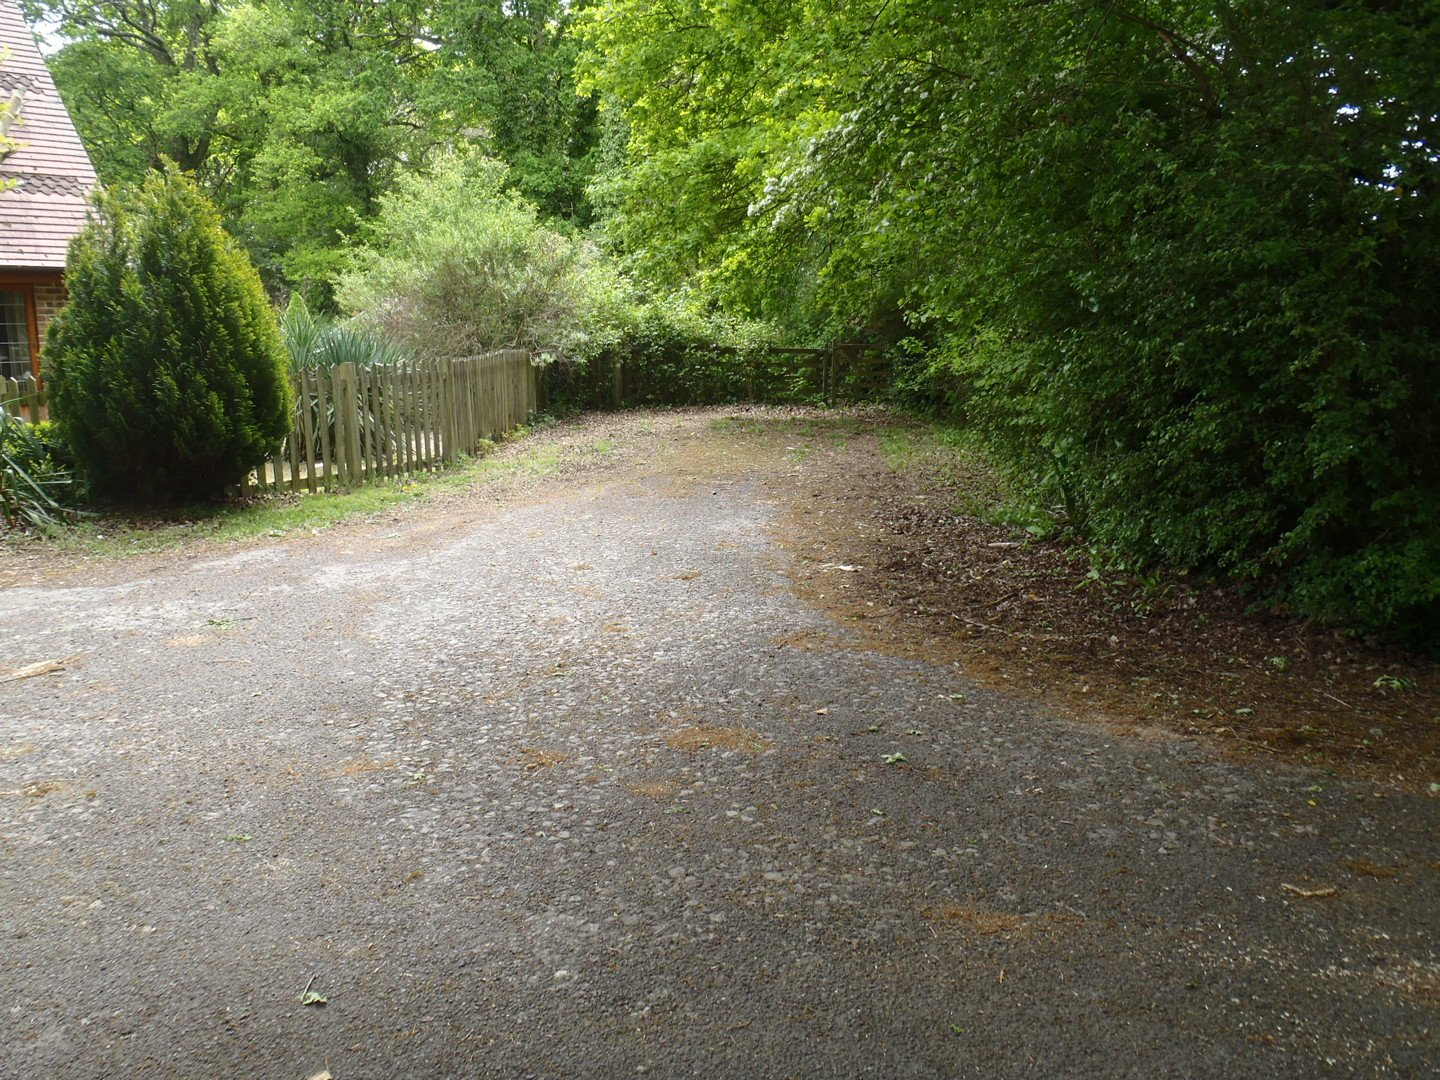 View of a road partially reclaimed by undergrowth and trees